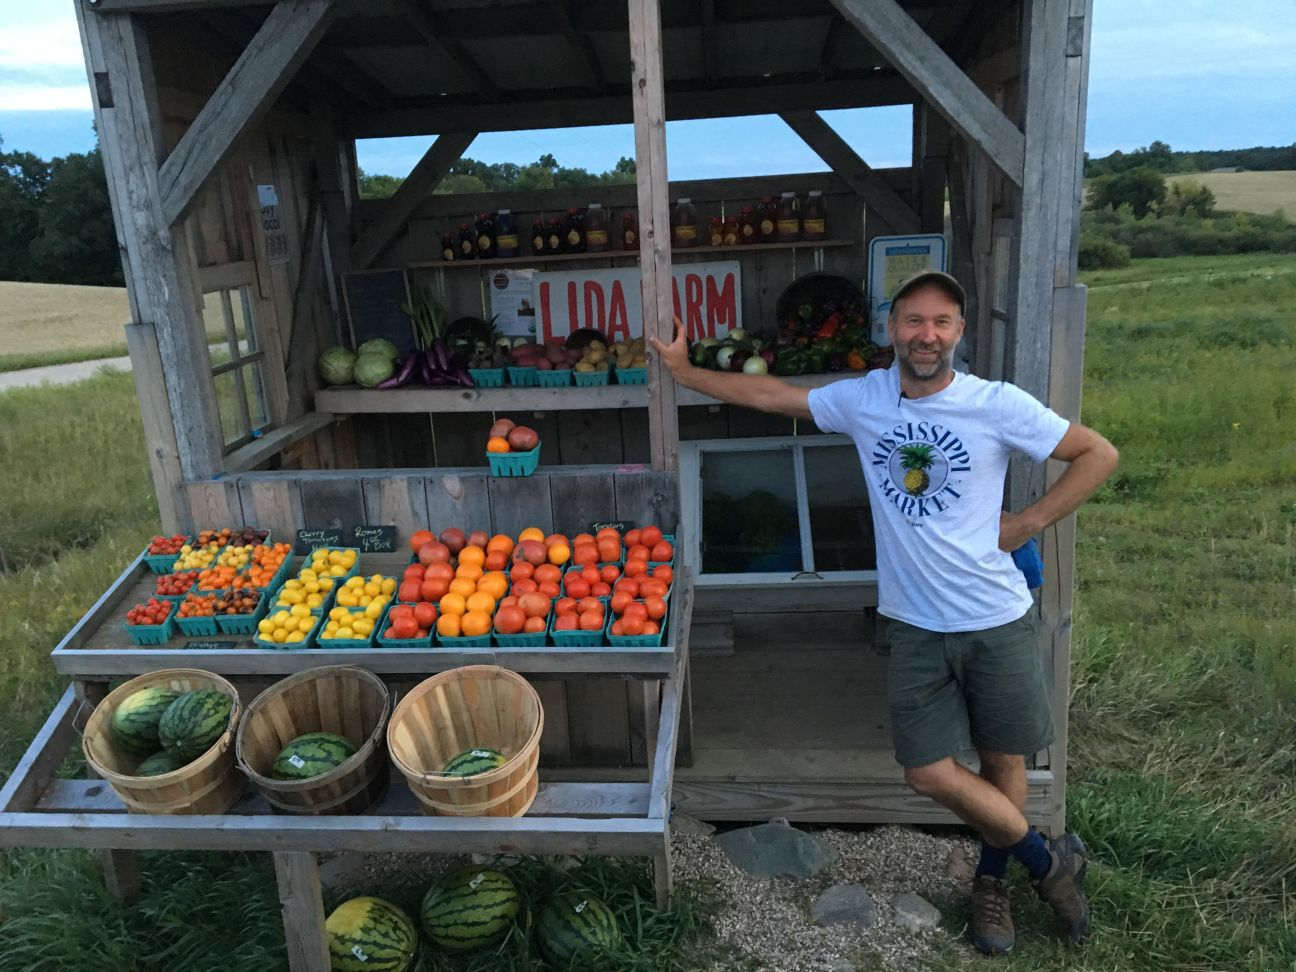 Me at Farm Stand 2